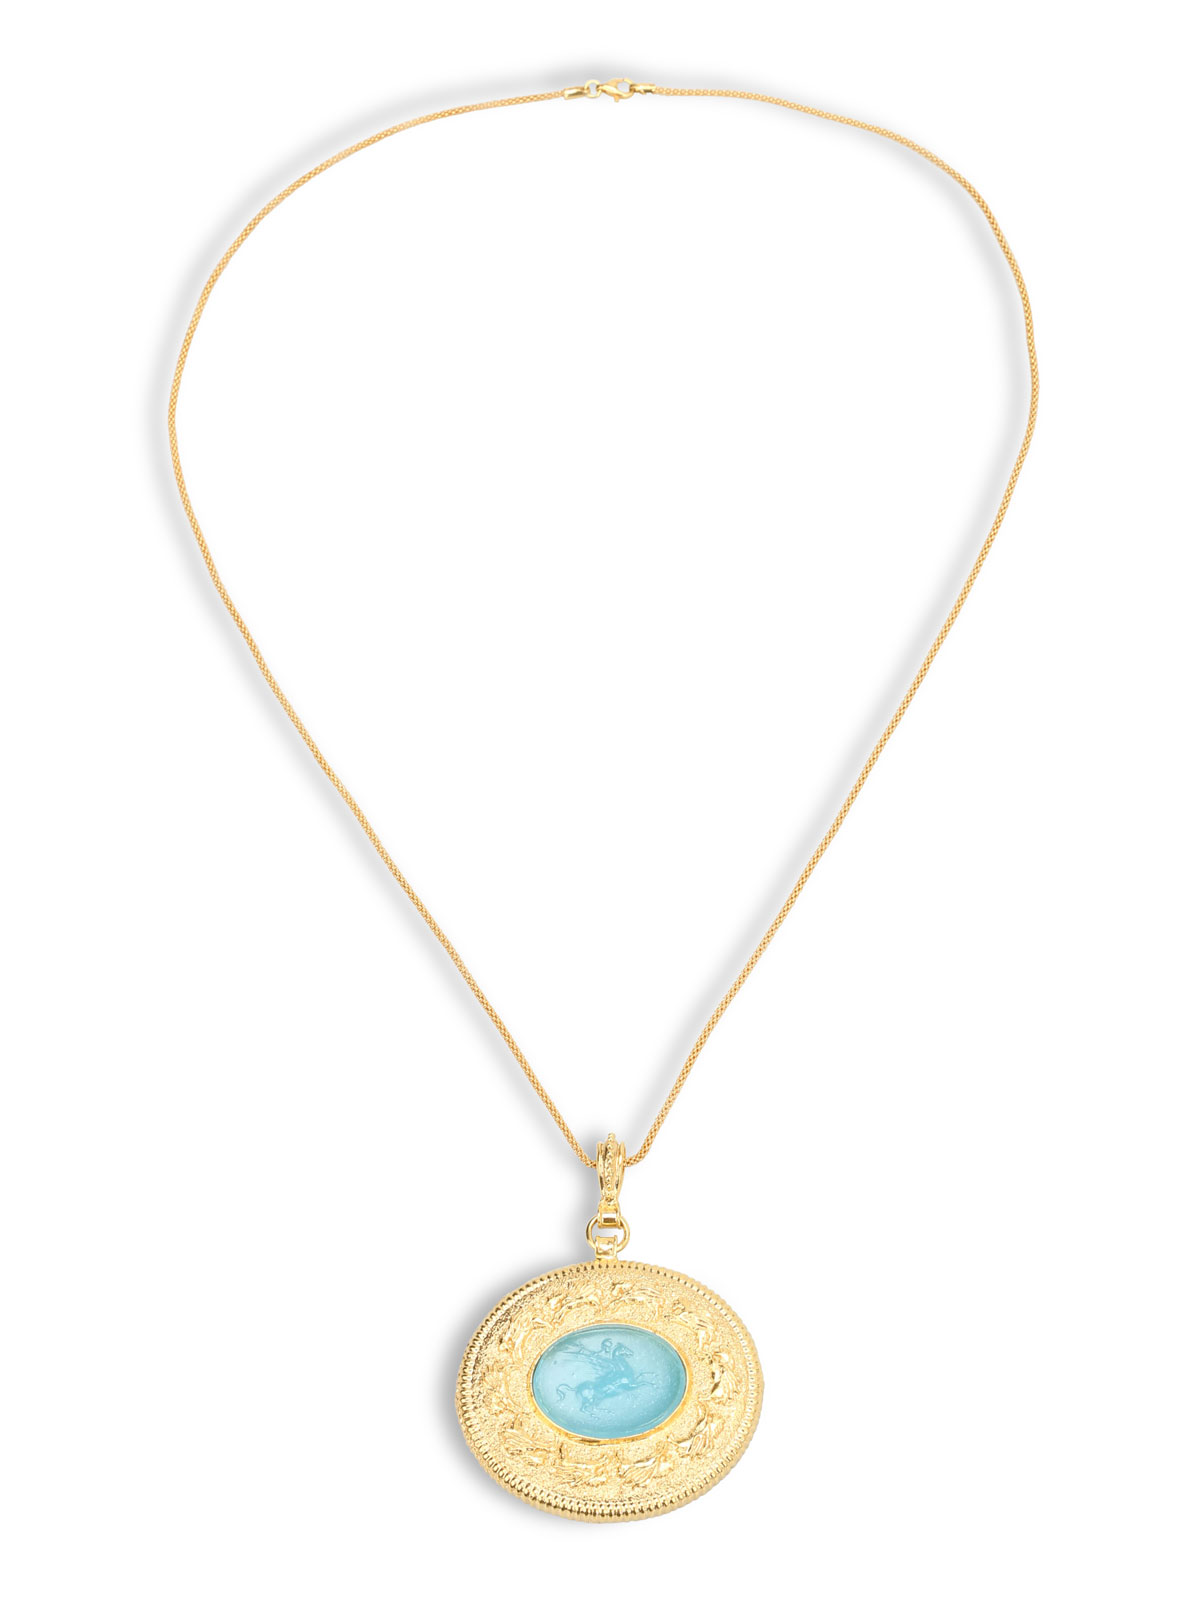 bulgari cornelian pendant apollon necklace intaglio collections eleuteri